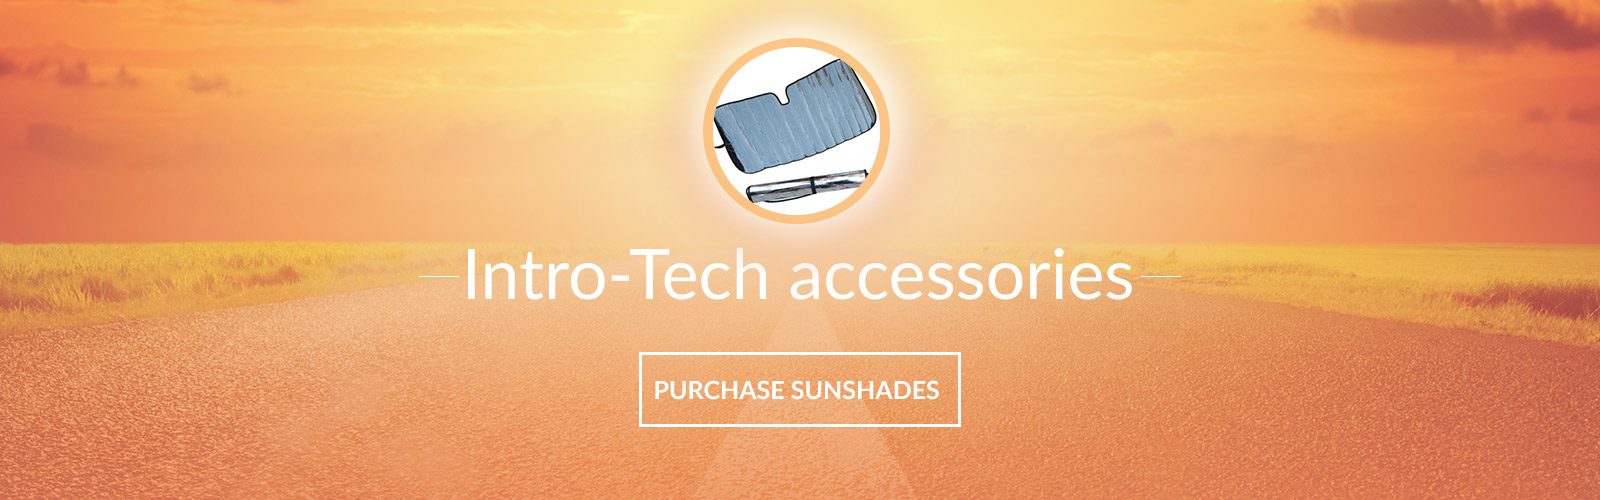 Intro-Tech Honda sunshades